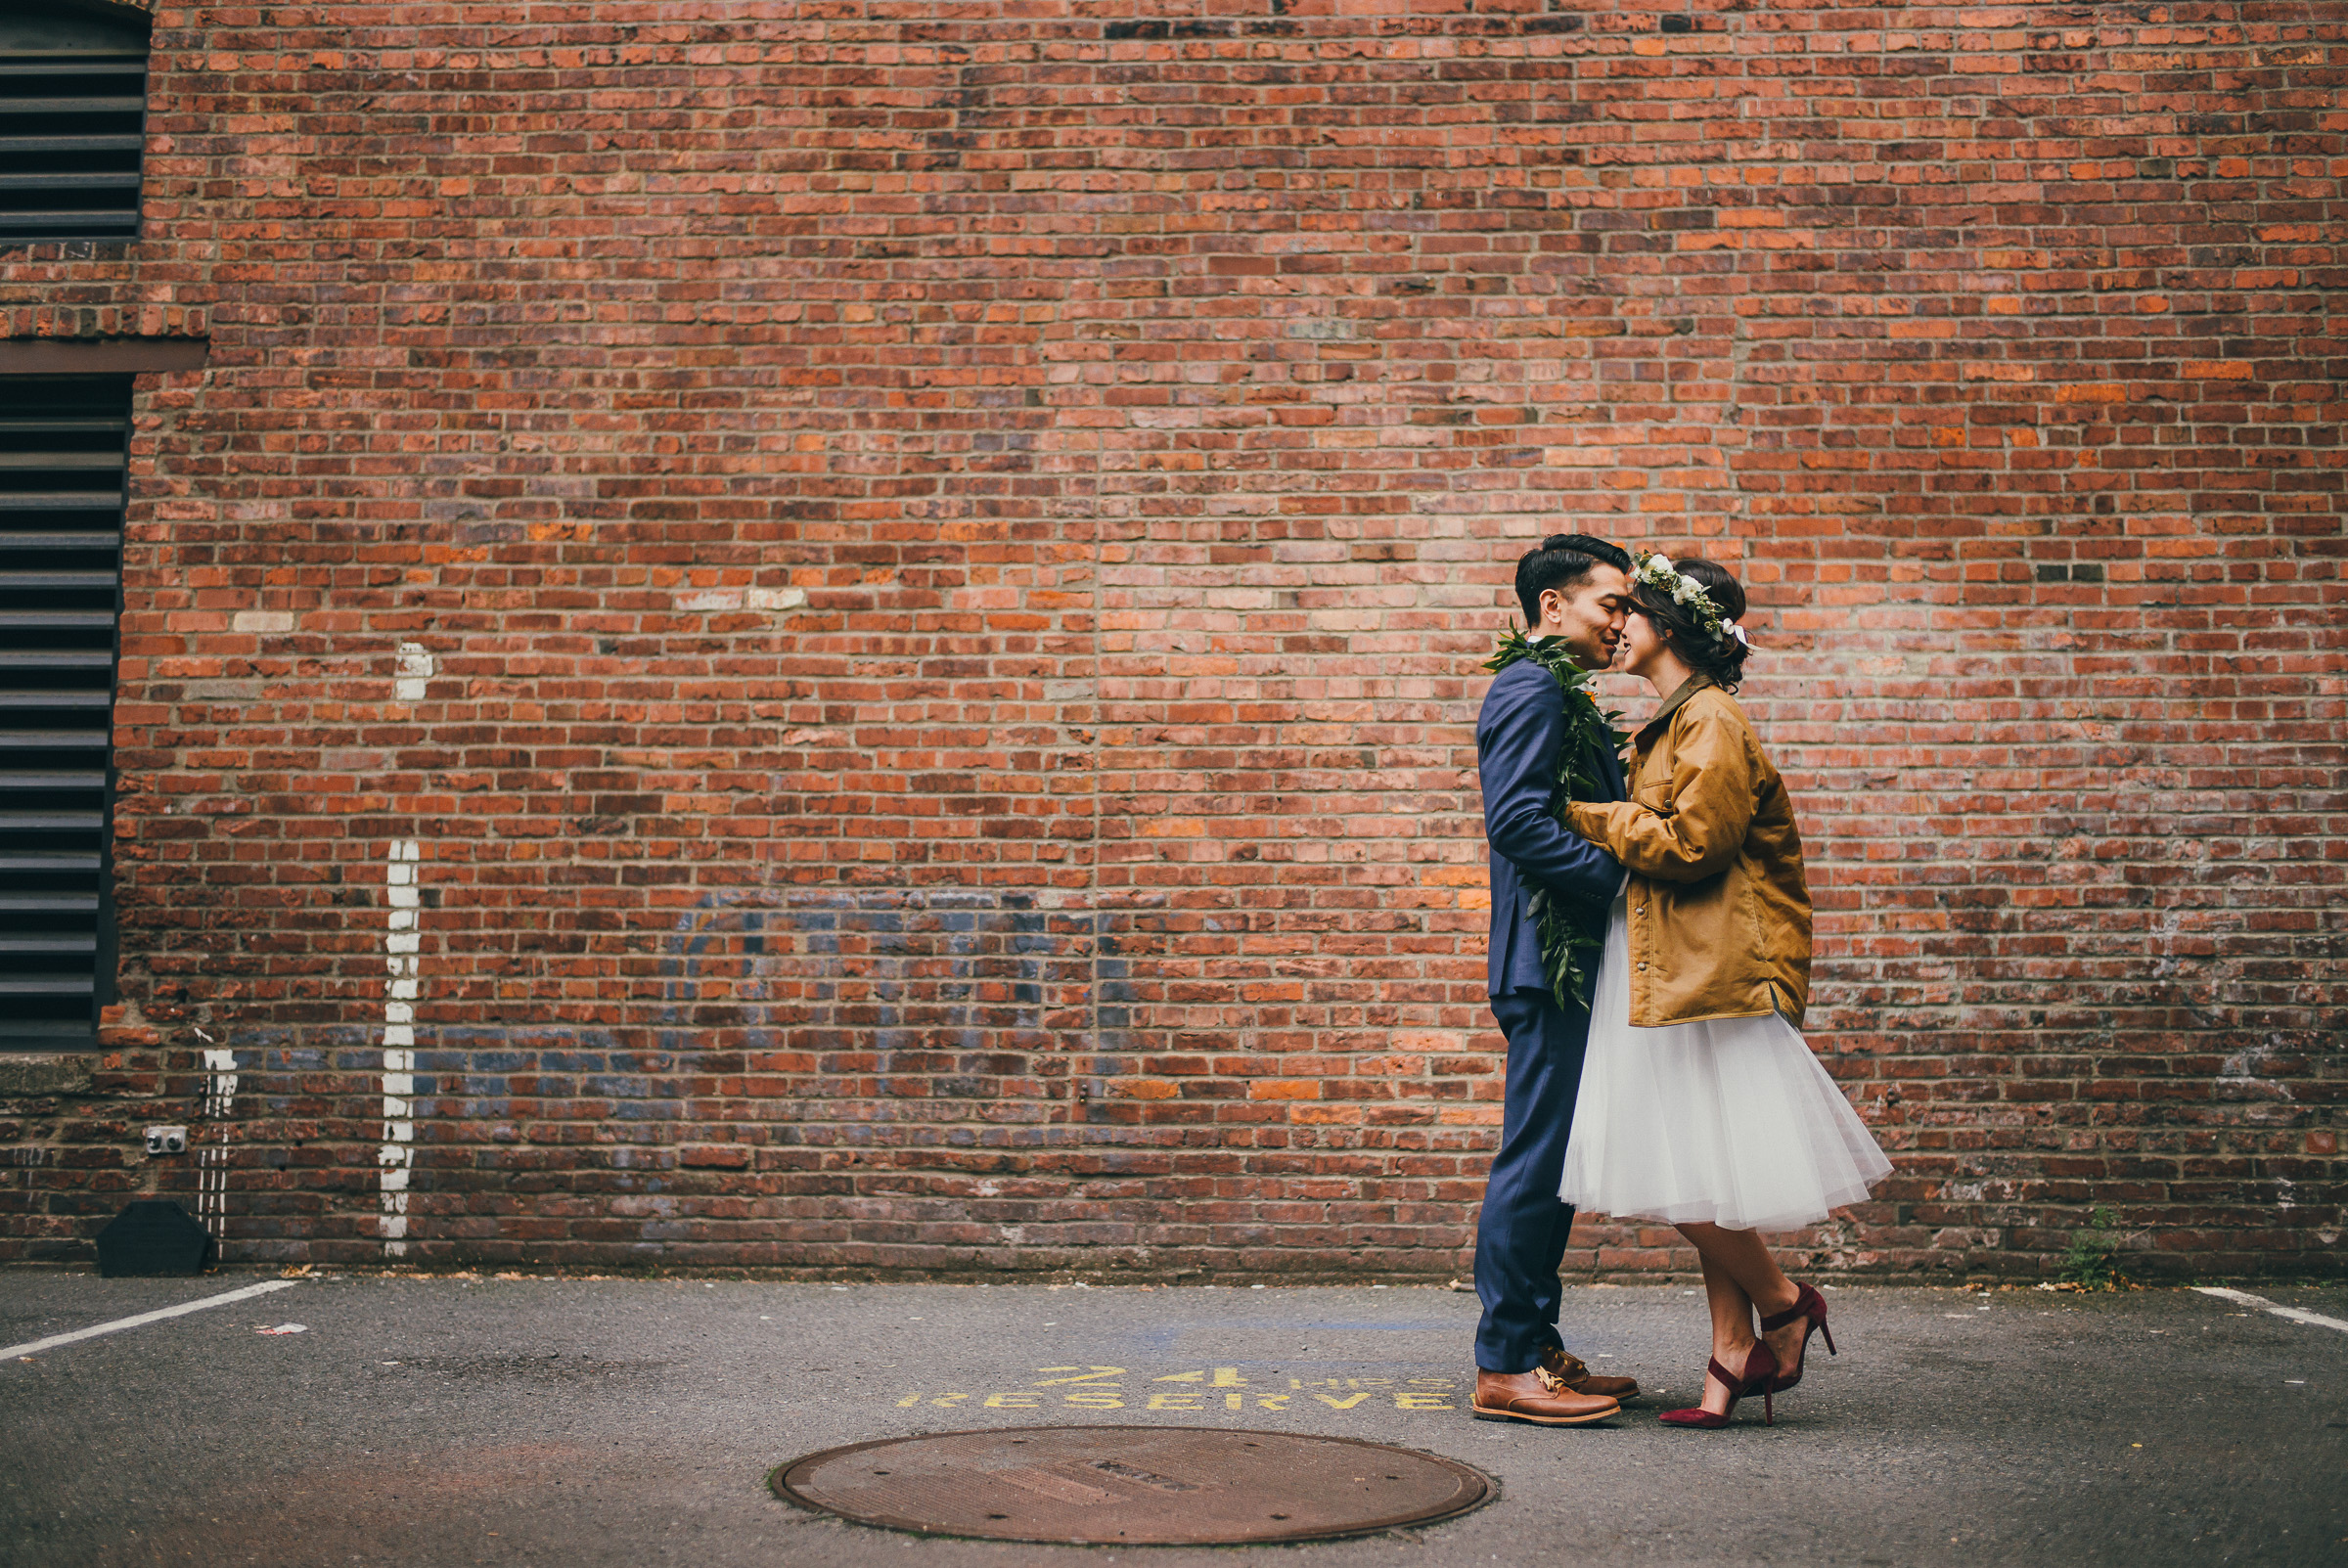 Bride and Groom Portraits with Brick Building in Pioneer Square, Seattle. in Seattle